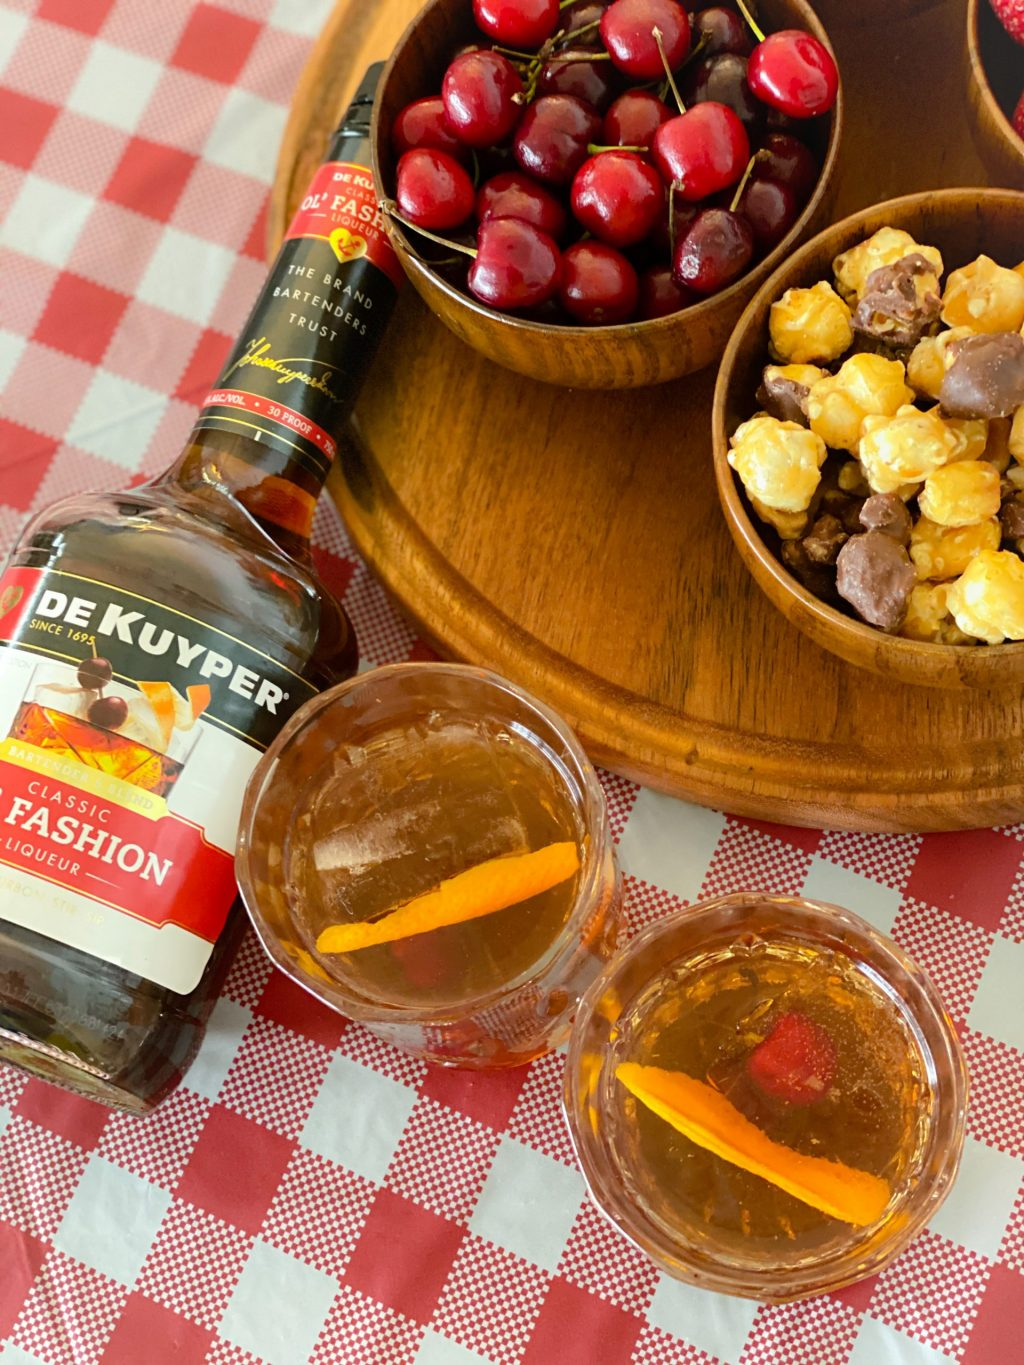 old fashioned liqueur and old fashioned cocktails in glasses on top of red and white tablecloth next to wooden tray with wooden bowls full of cheeries and popcorn